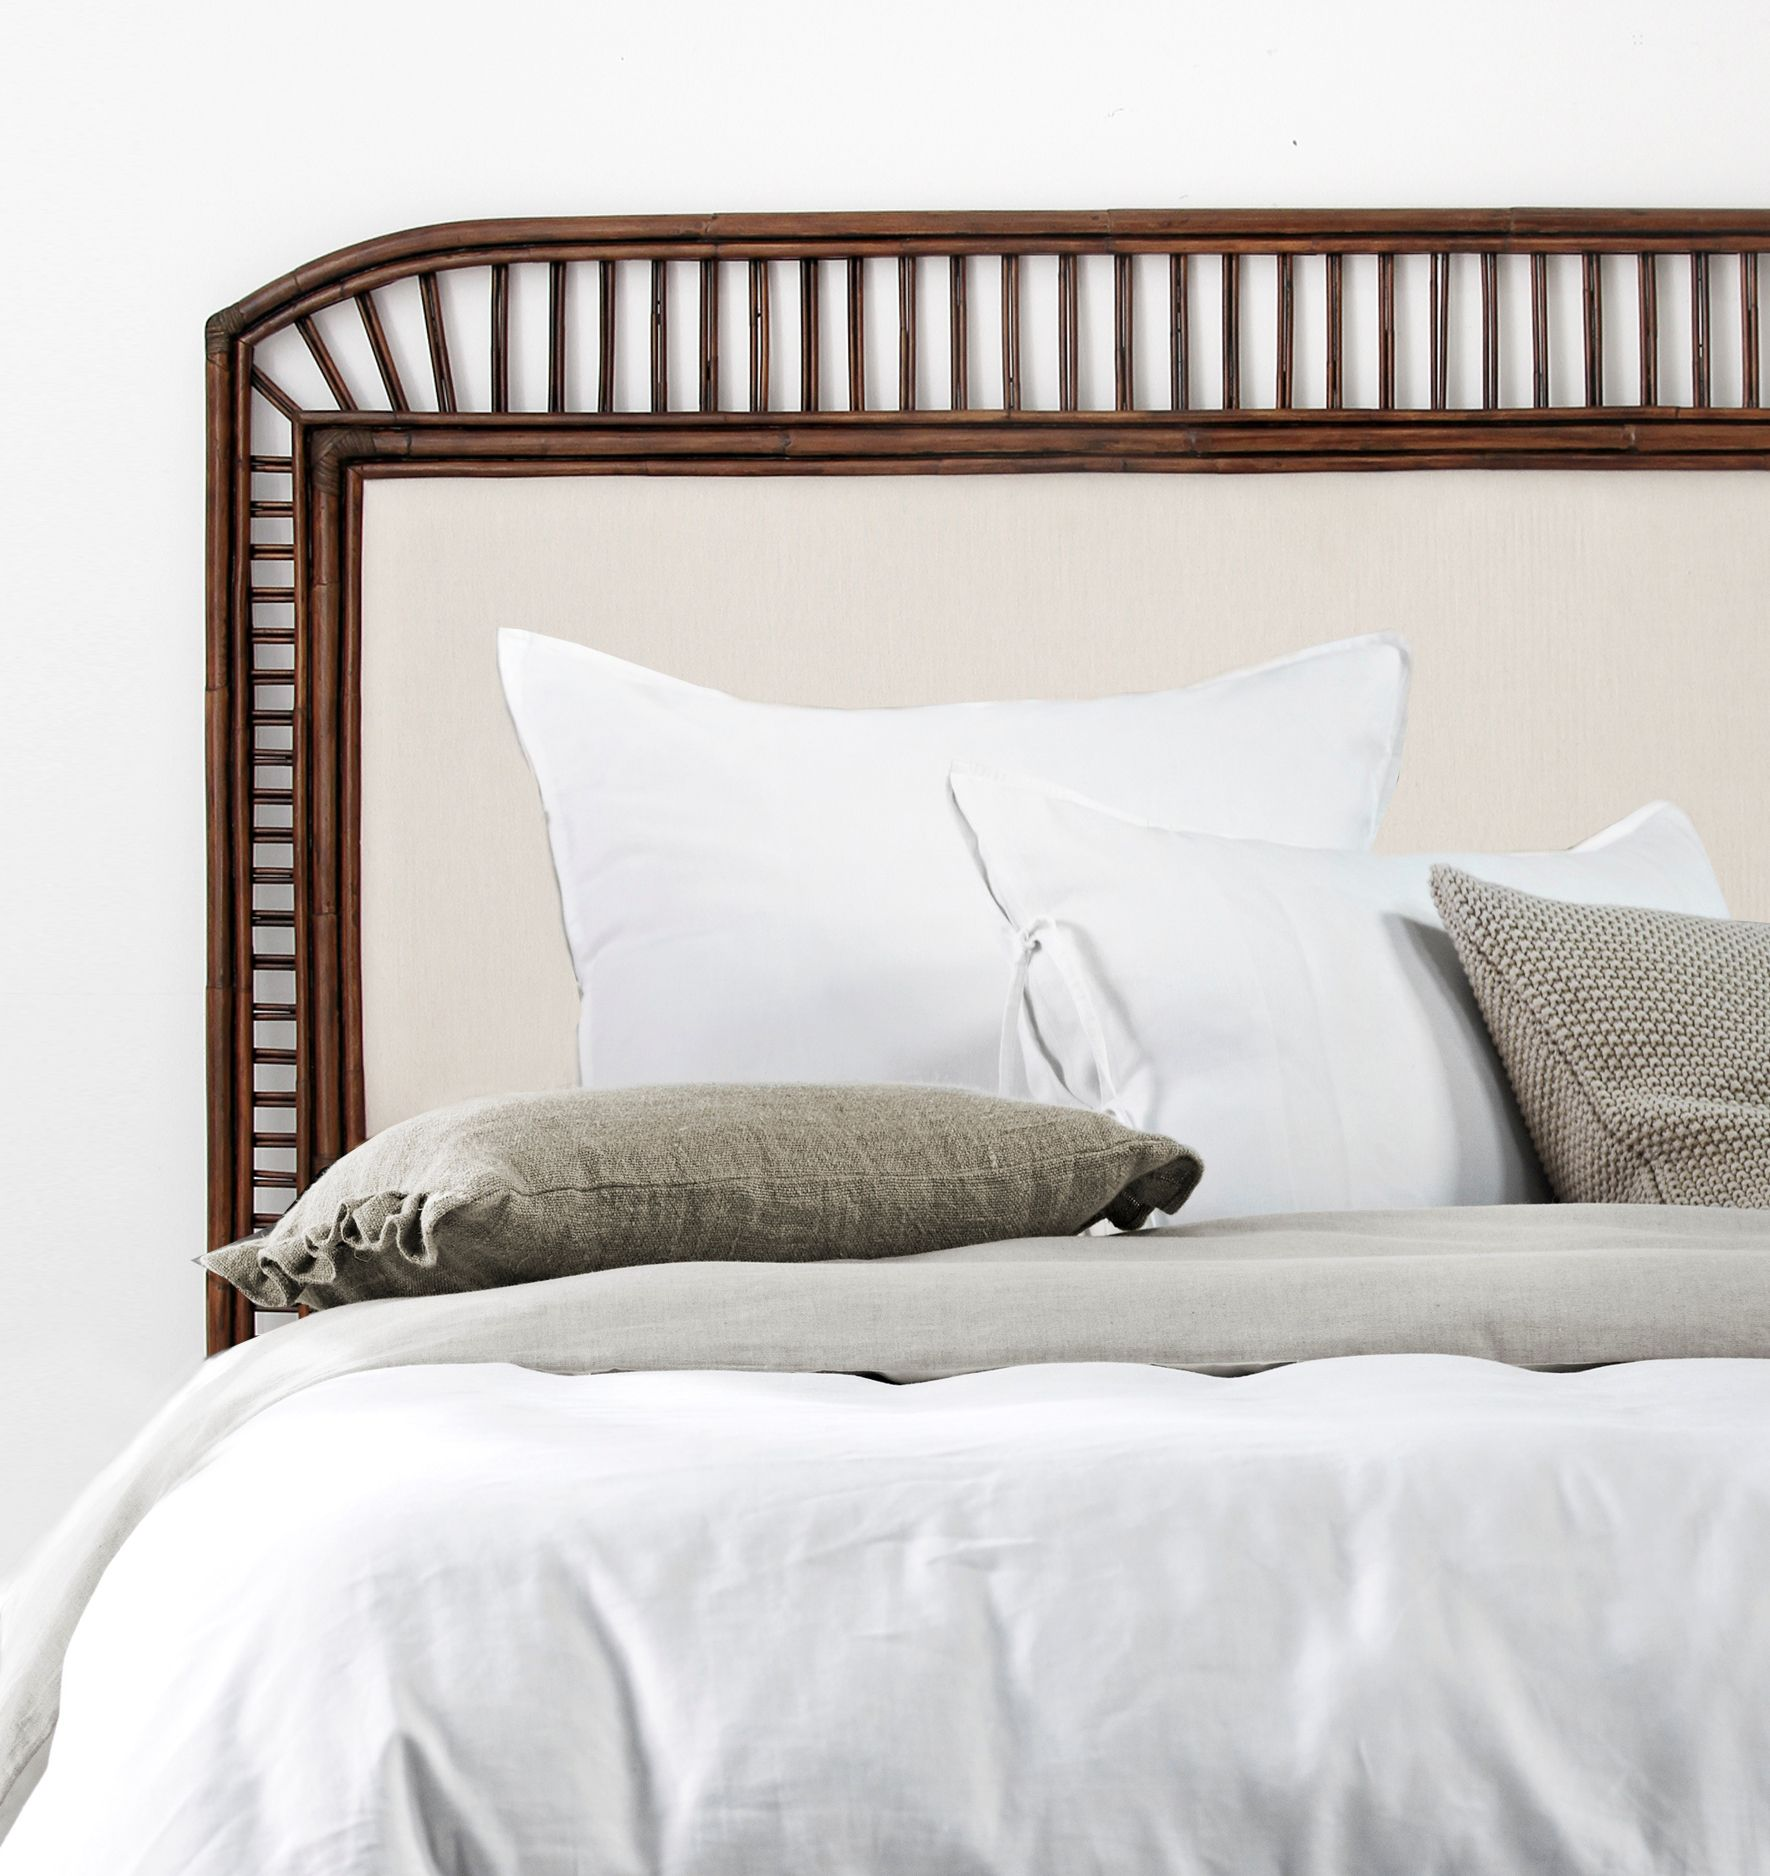 Plantation Furniture Australia Plantation Headboard Naturallycane Rattan And Wicker Furniture